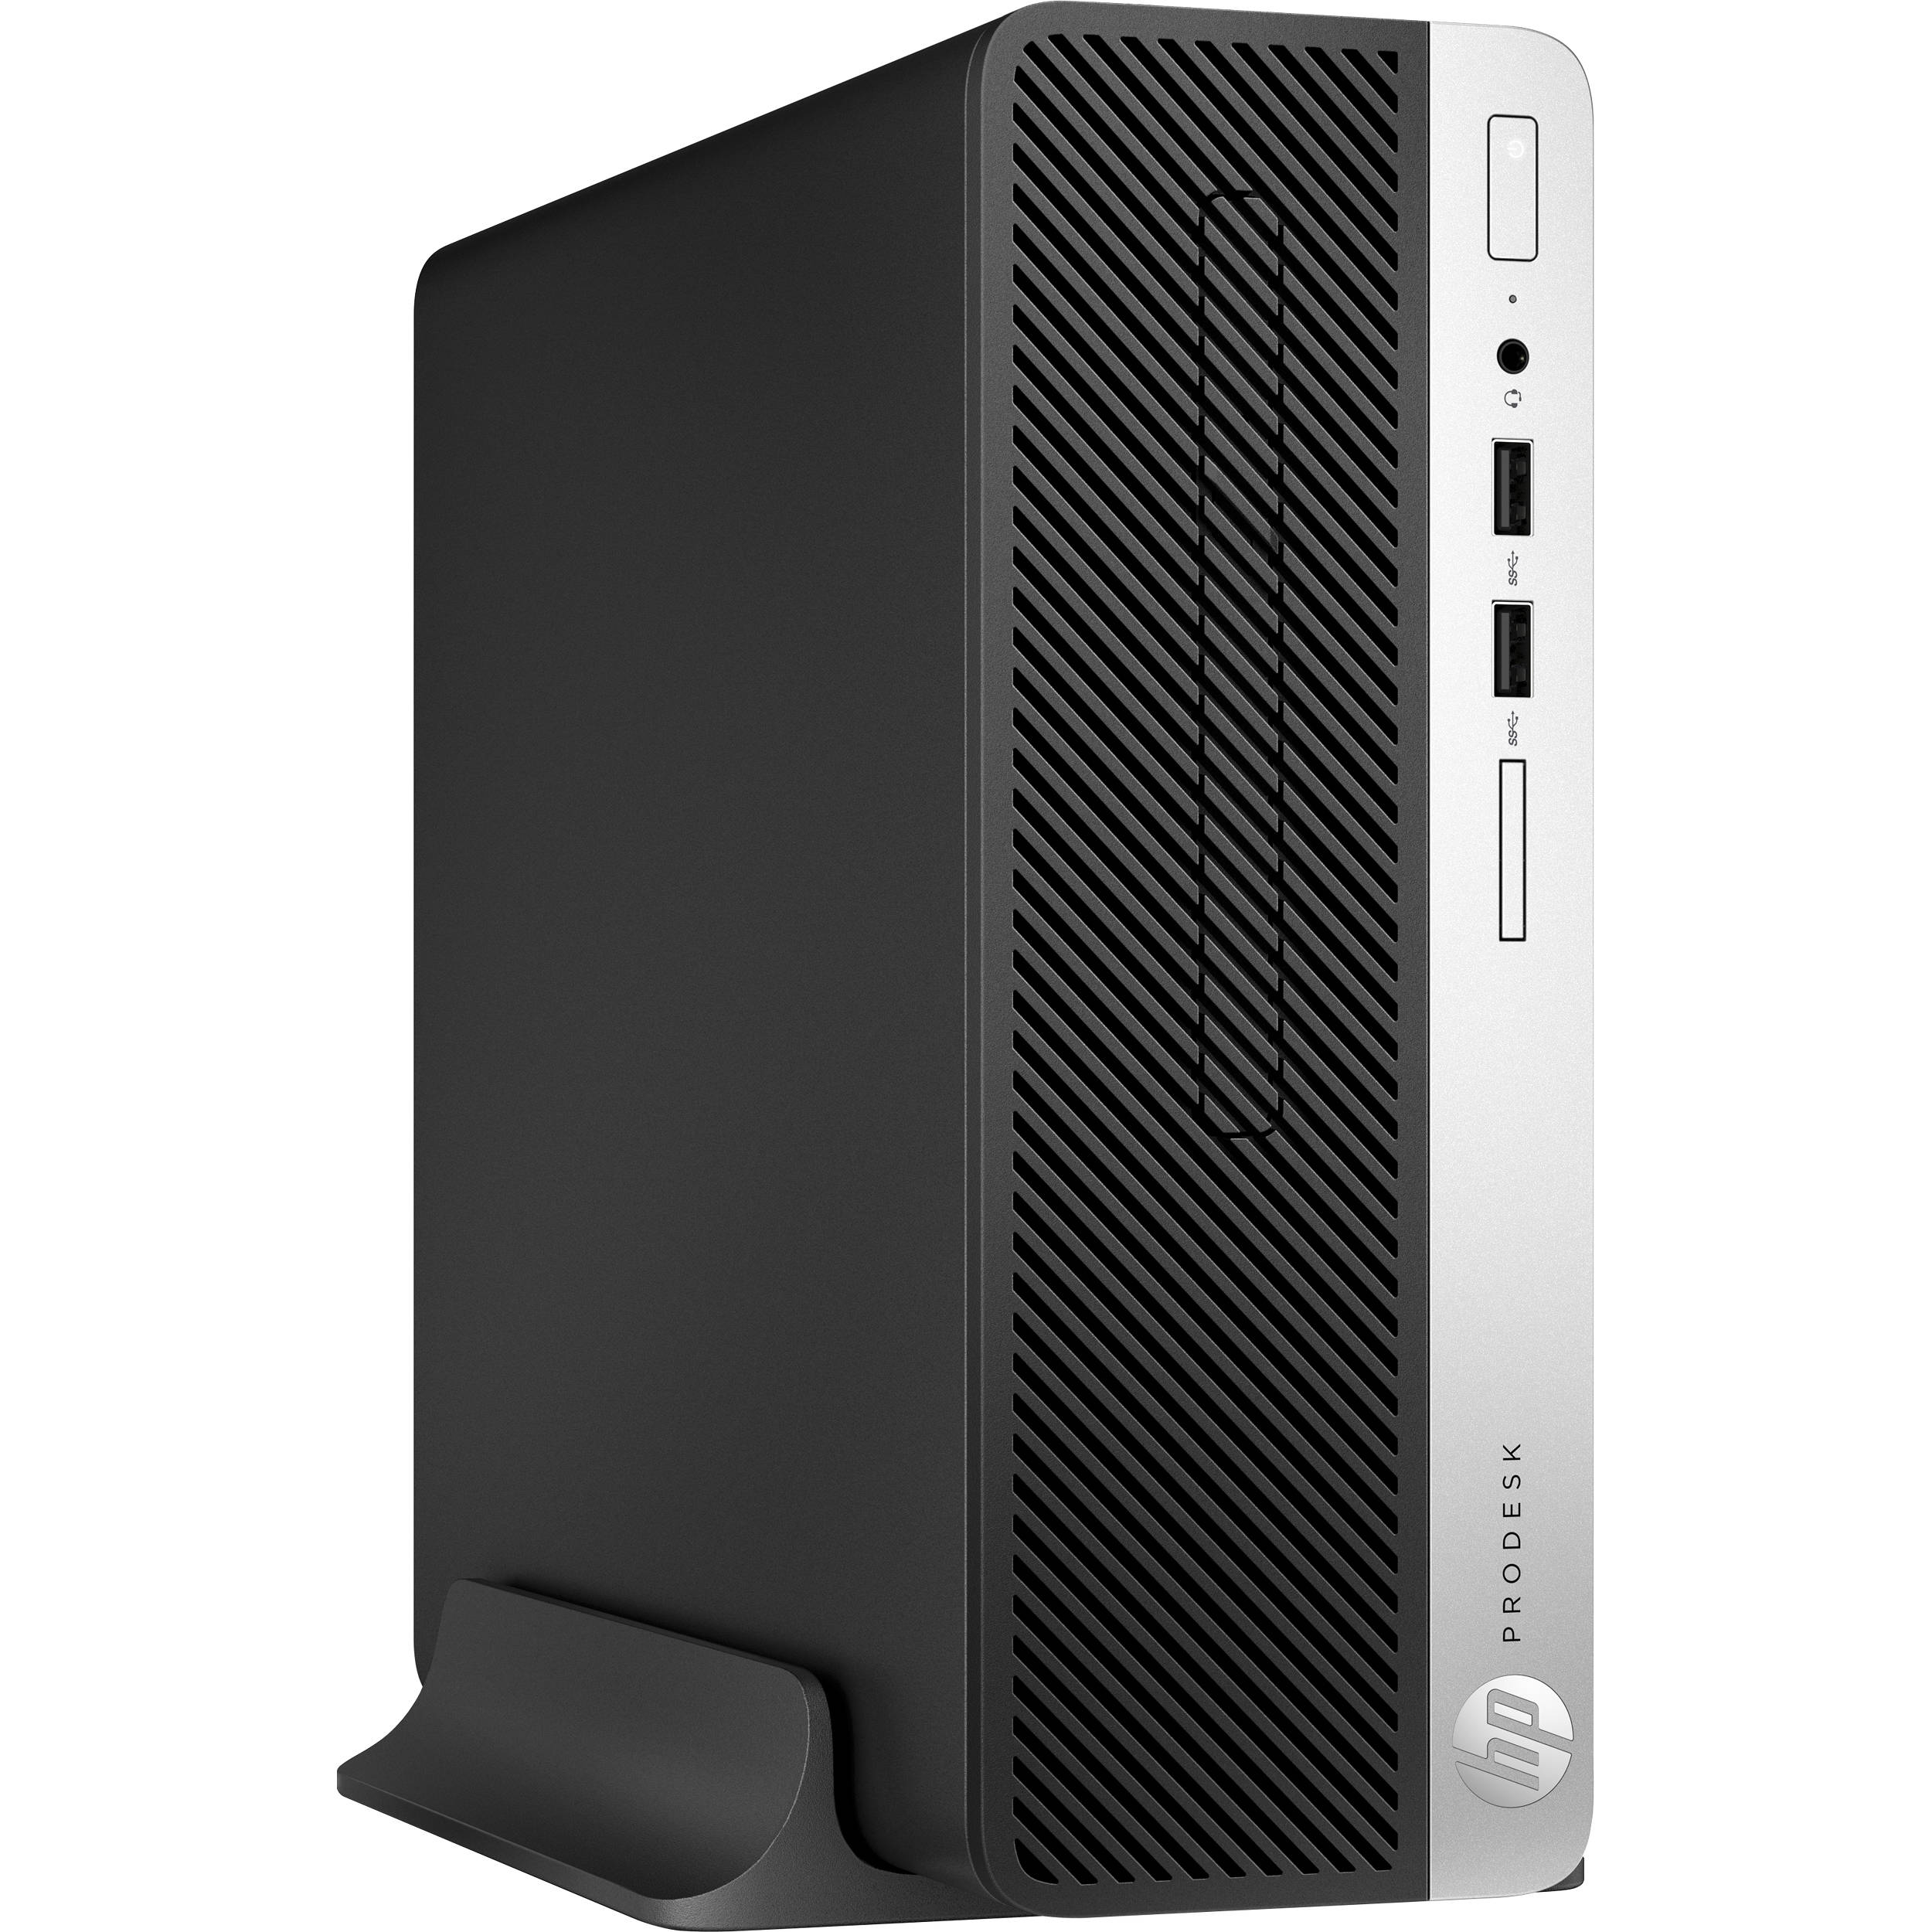 New HP ProDesk 400 G5 Desktop Intel i5-8500 3GHz 8GB 1TB Win 10 Pro | 4BW89UT